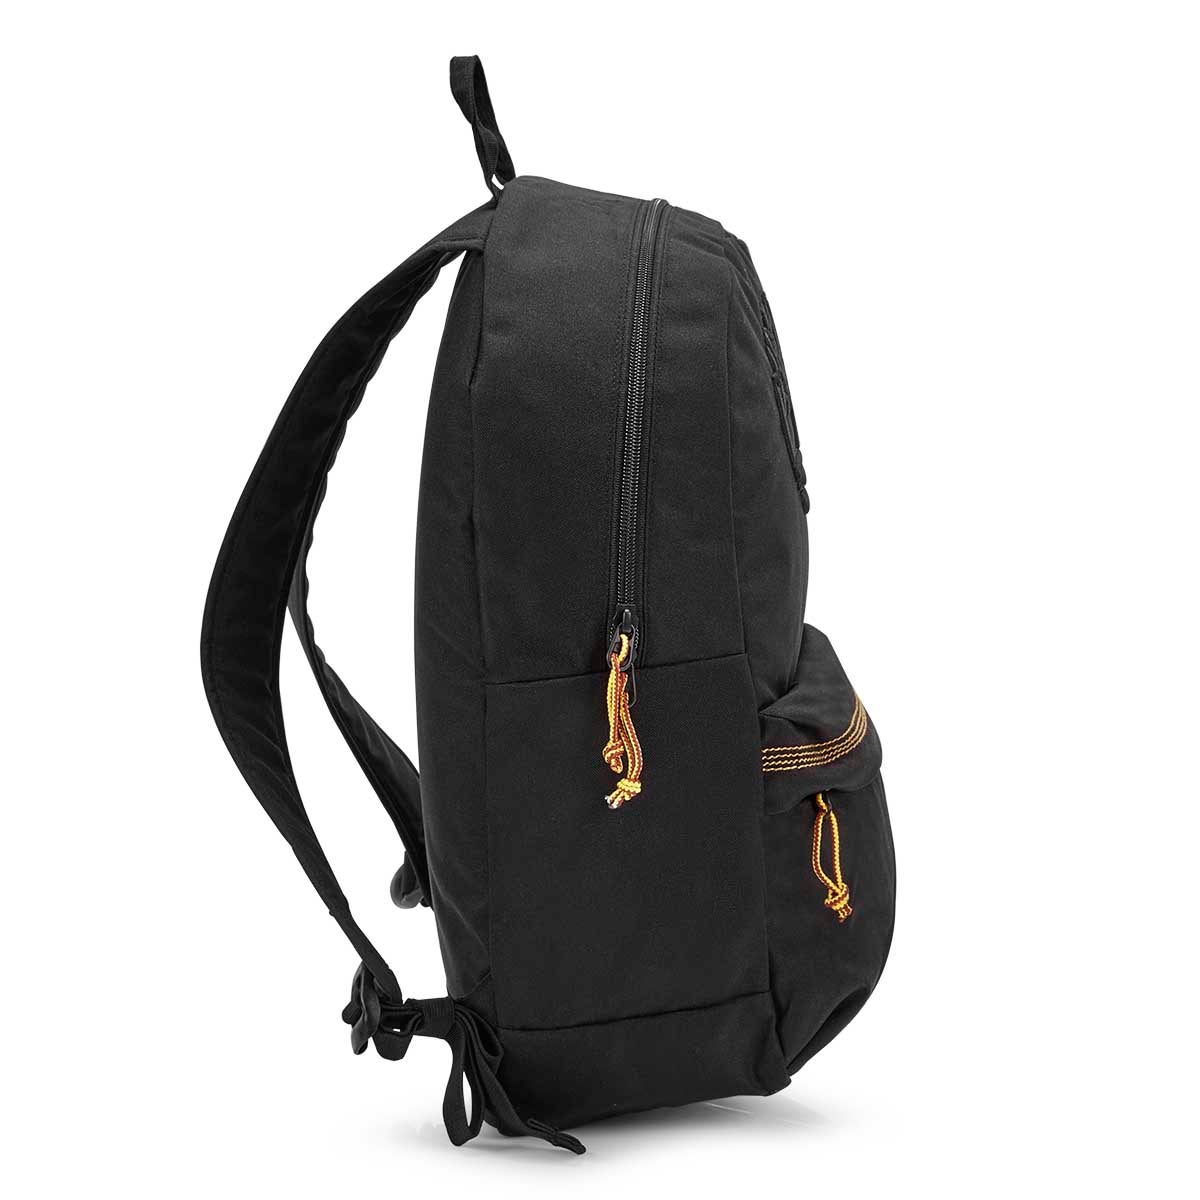 Timberland Mendum Pond 22L blk backpack